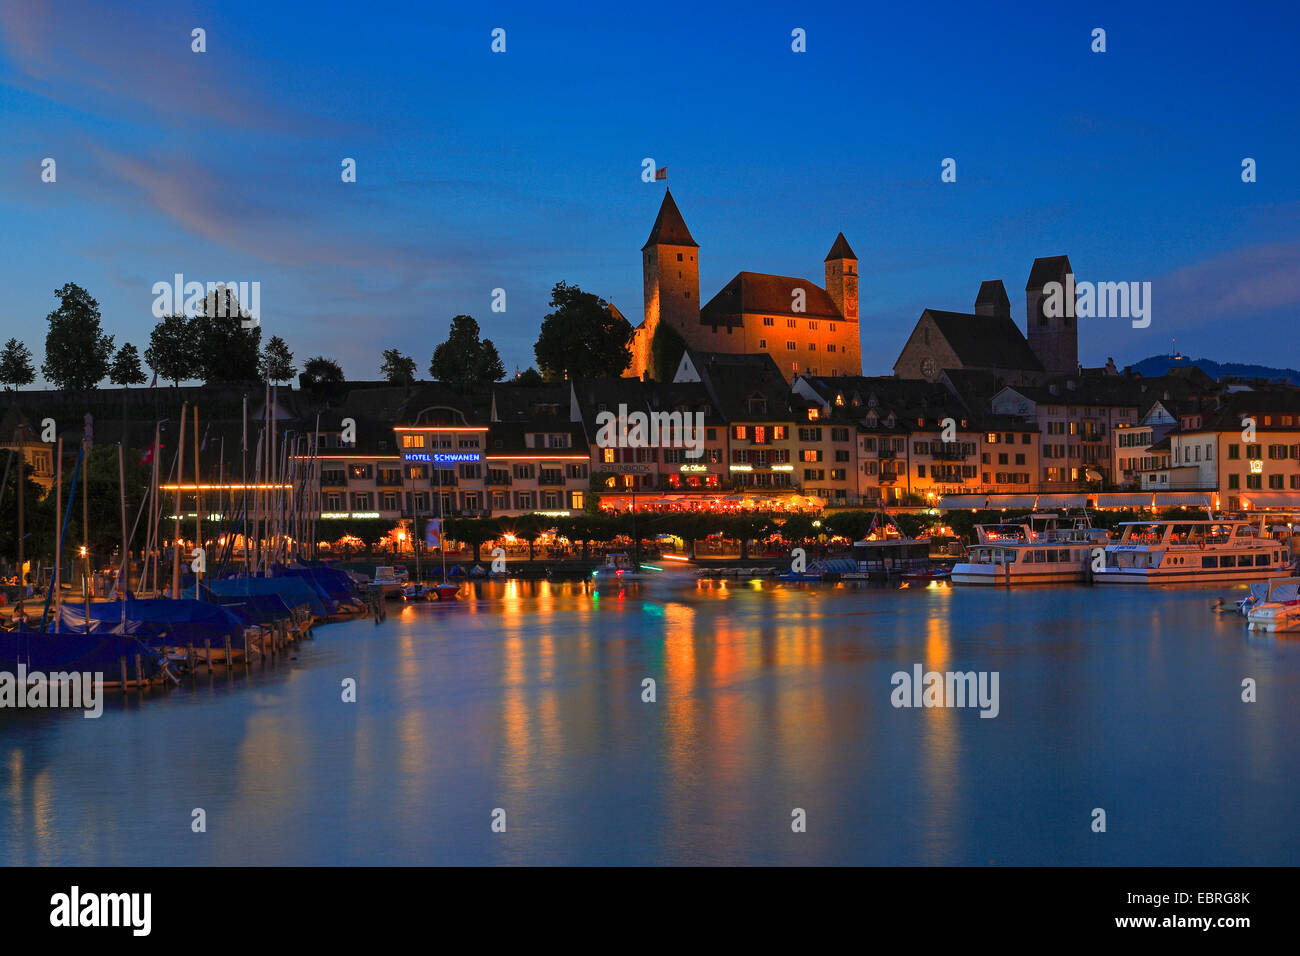 Castle Rapperswil at the Lake Zuerich, Switzerland - Stock Image